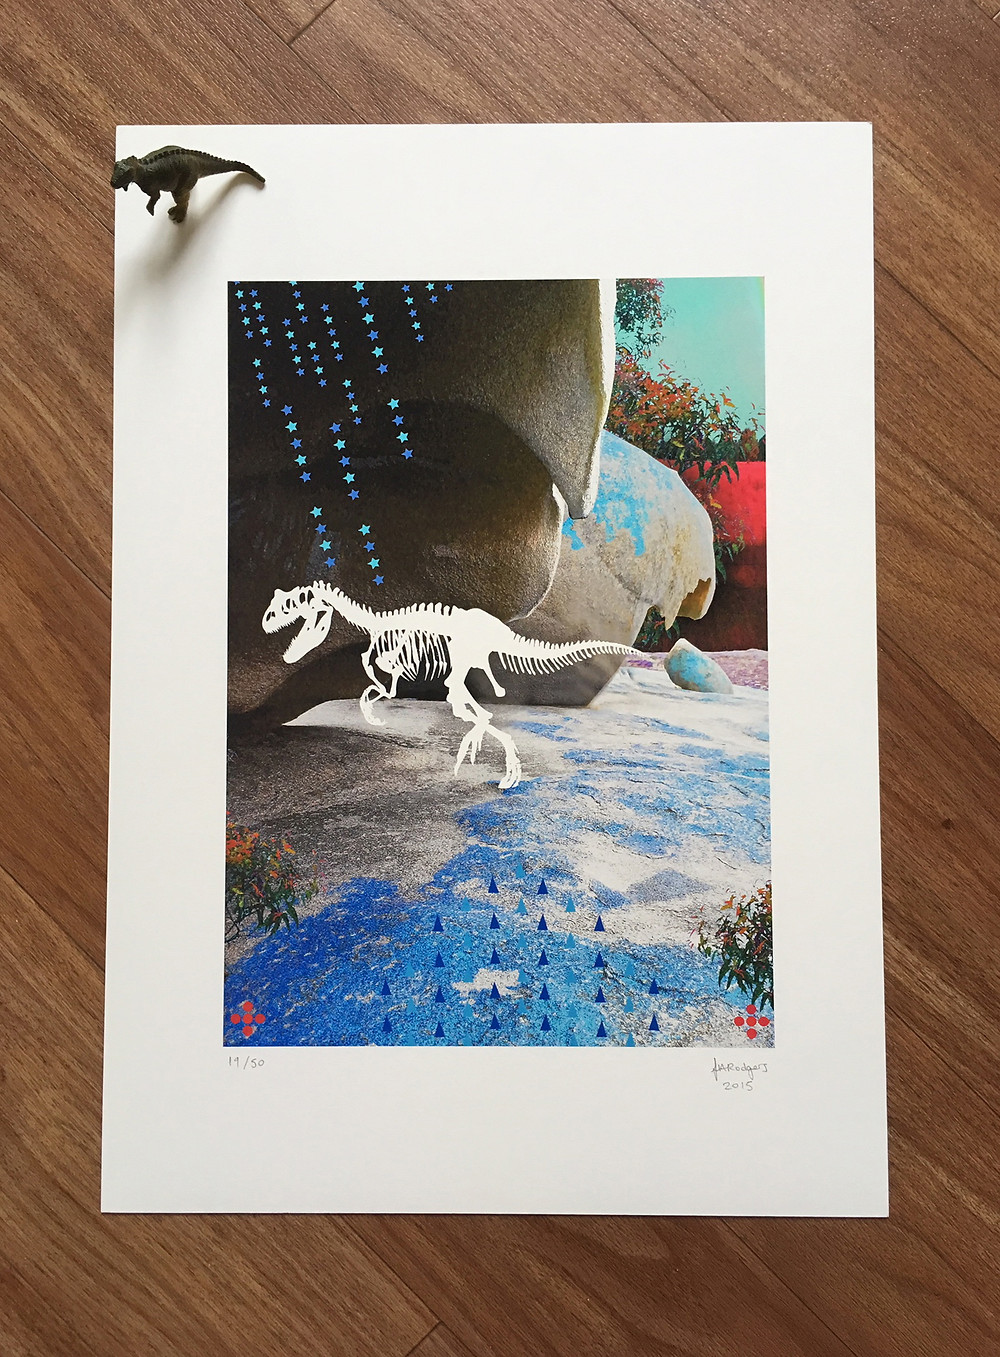 King Lizard Limited Edition Giclée Print